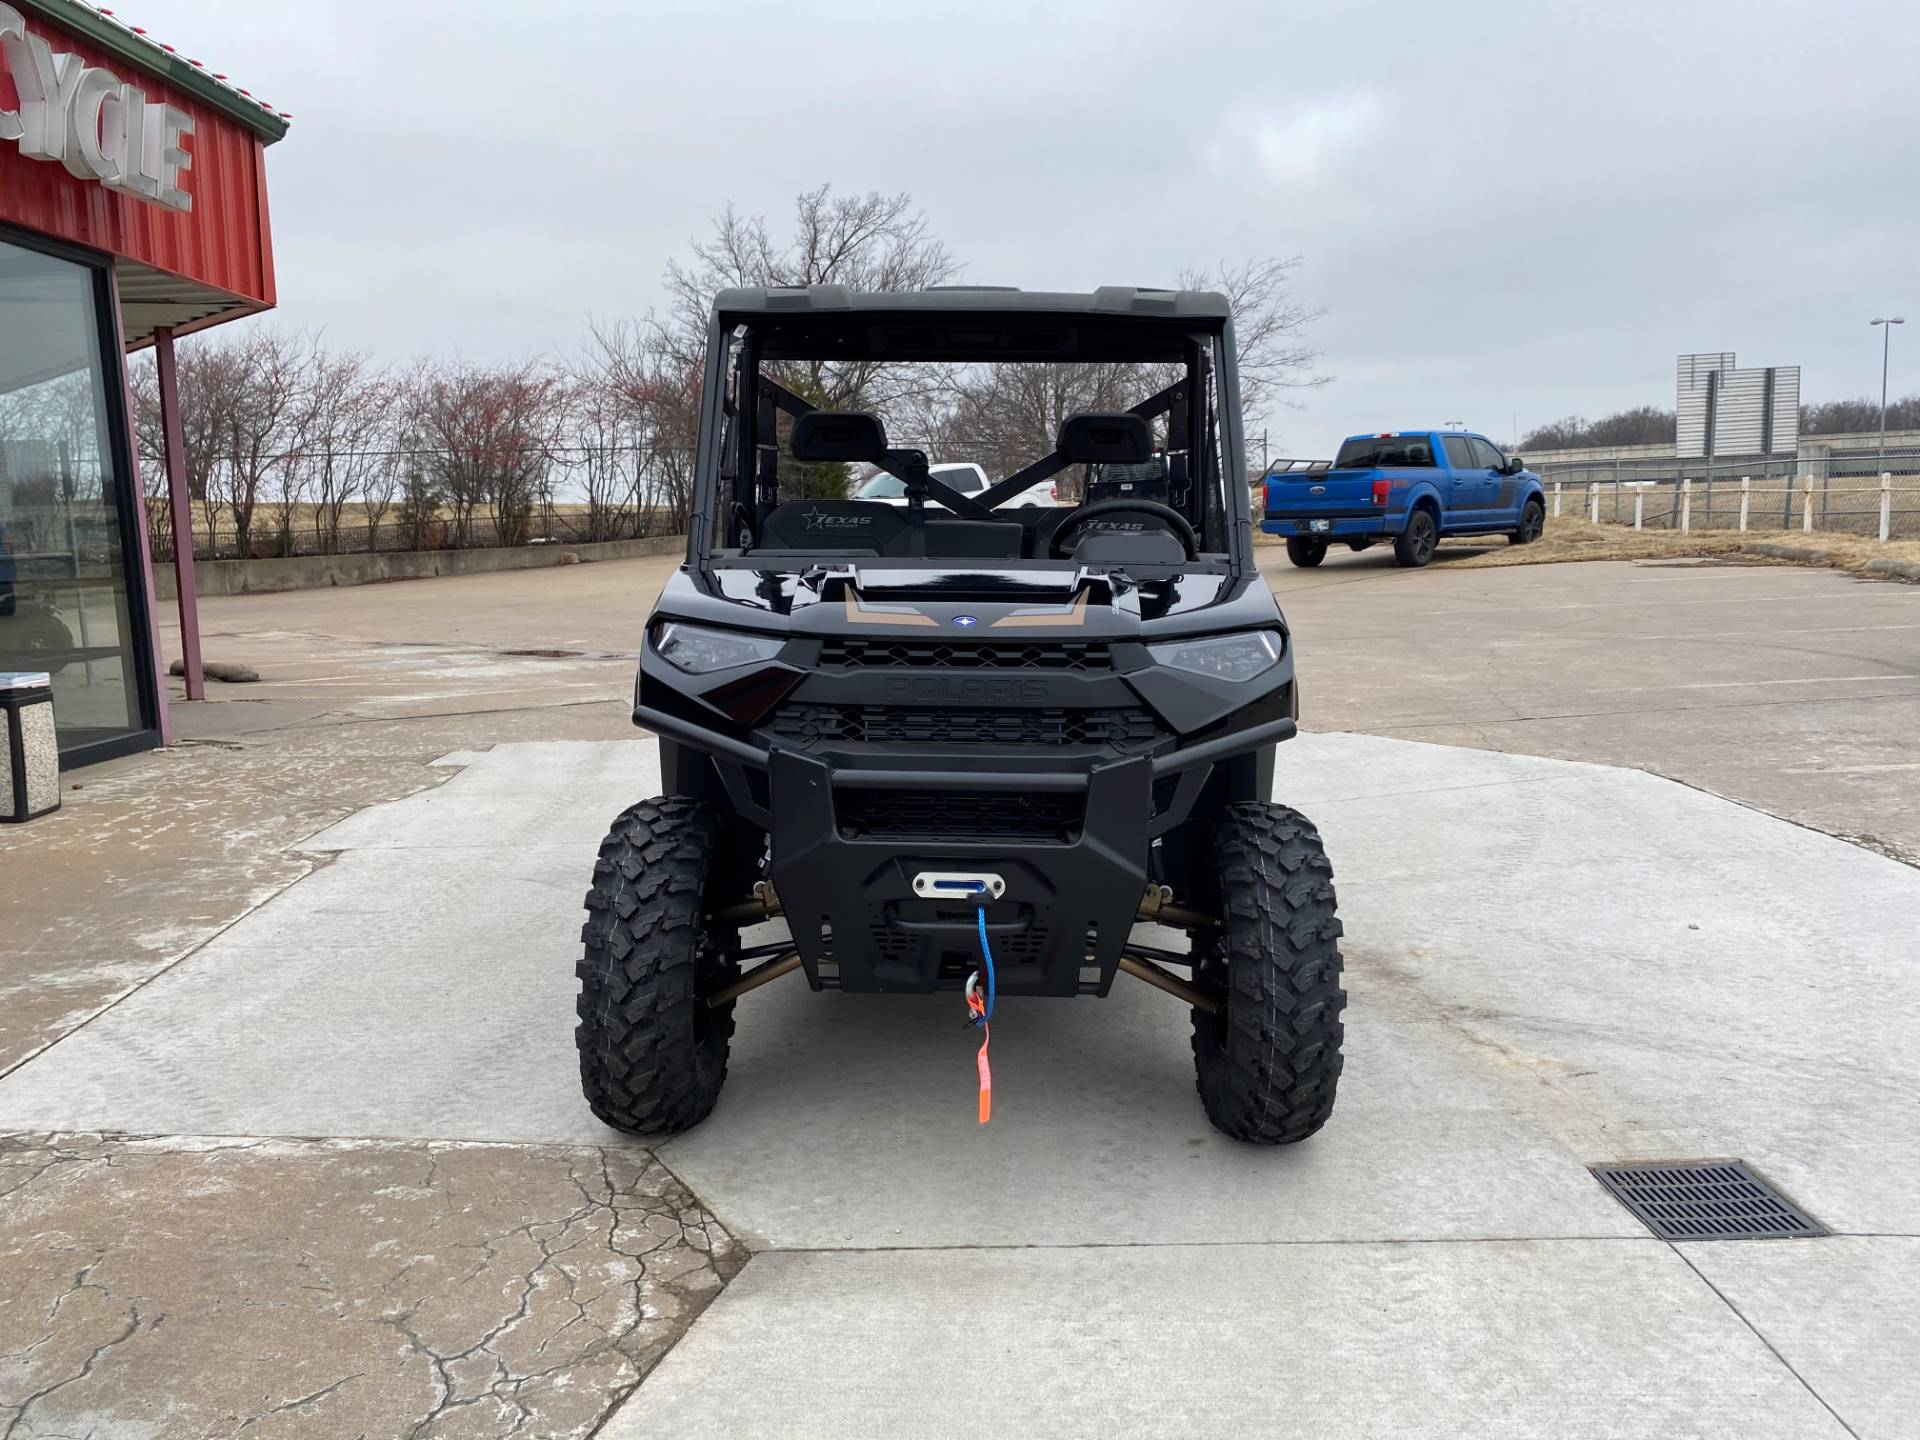 2021 Polaris RANGER XP 1000 Texas Edition in Broken Arrow, Oklahoma - Photo 3